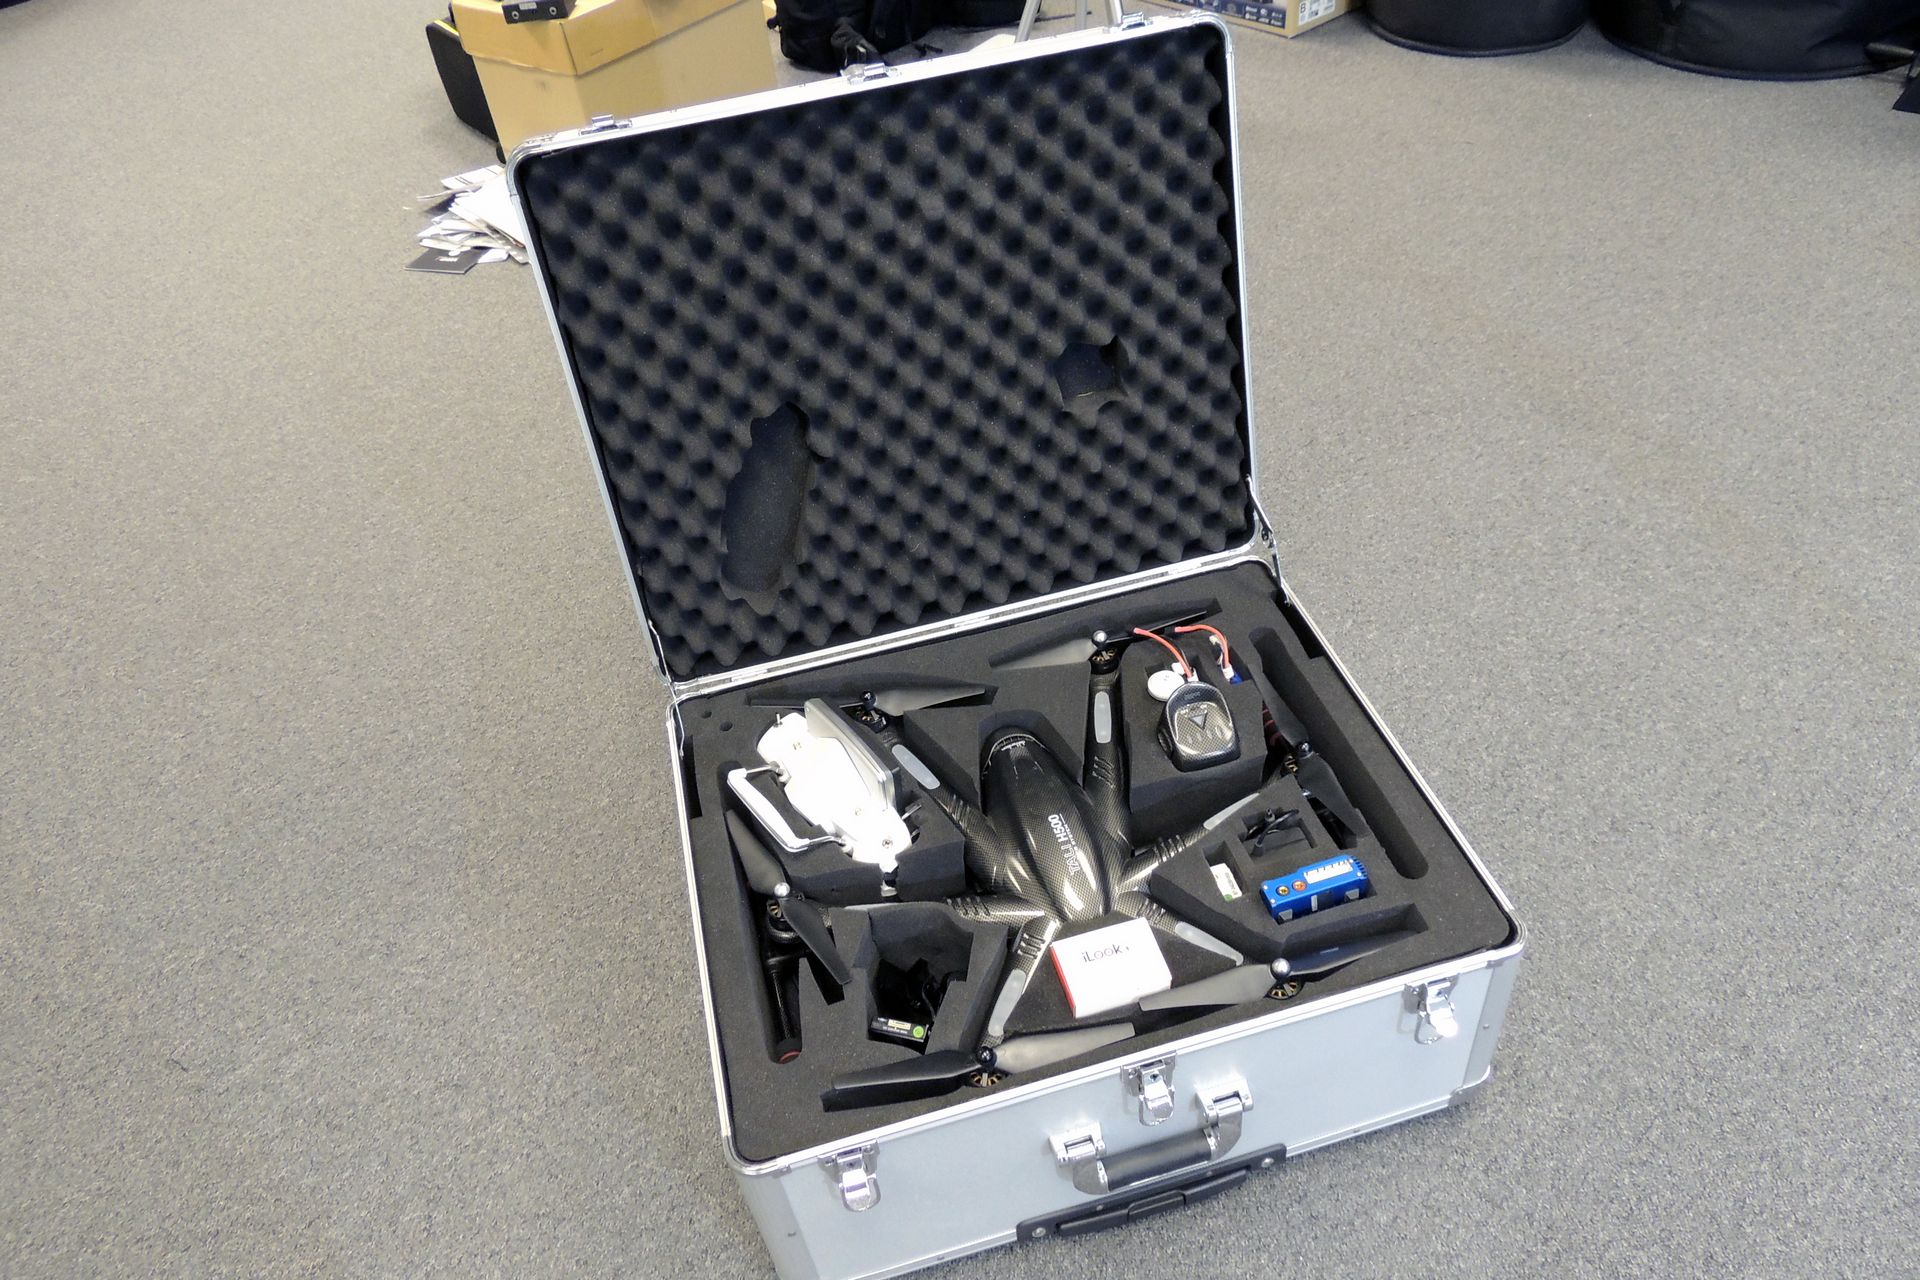 Tali H500 drone for sale at Plasma Music